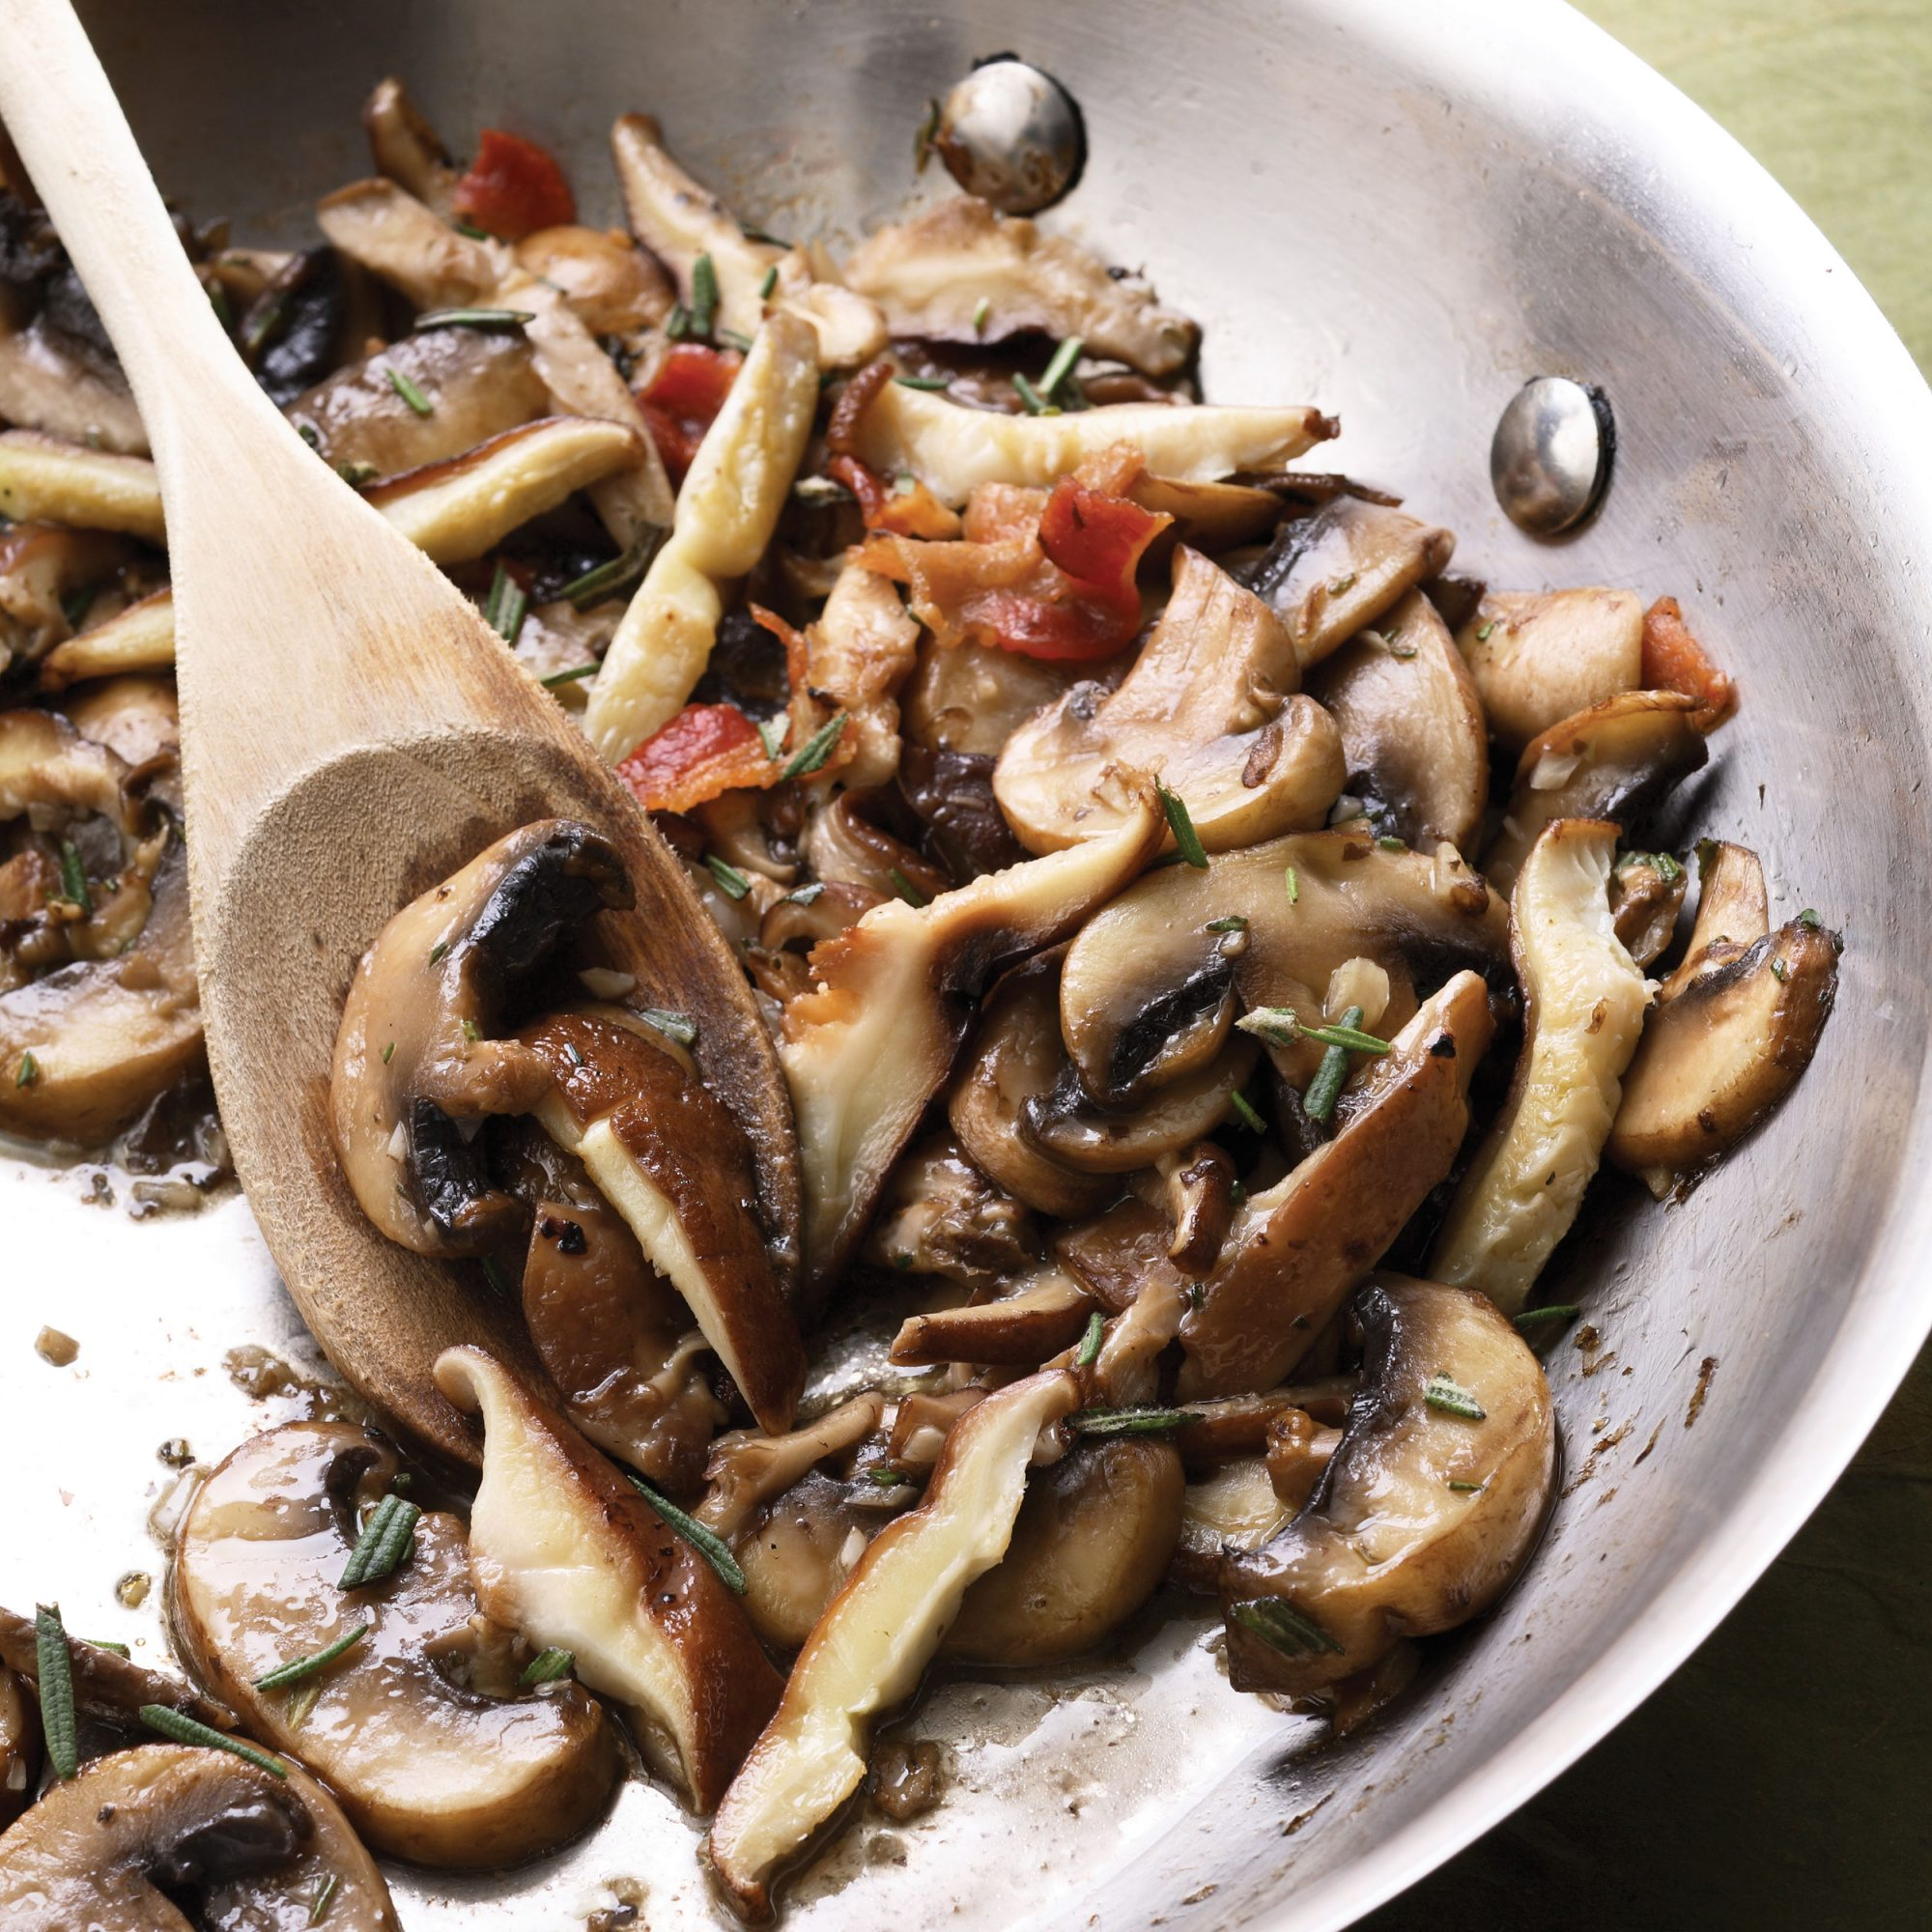 sauteed mushrooms in a stainless steel pan with a wooden spoon